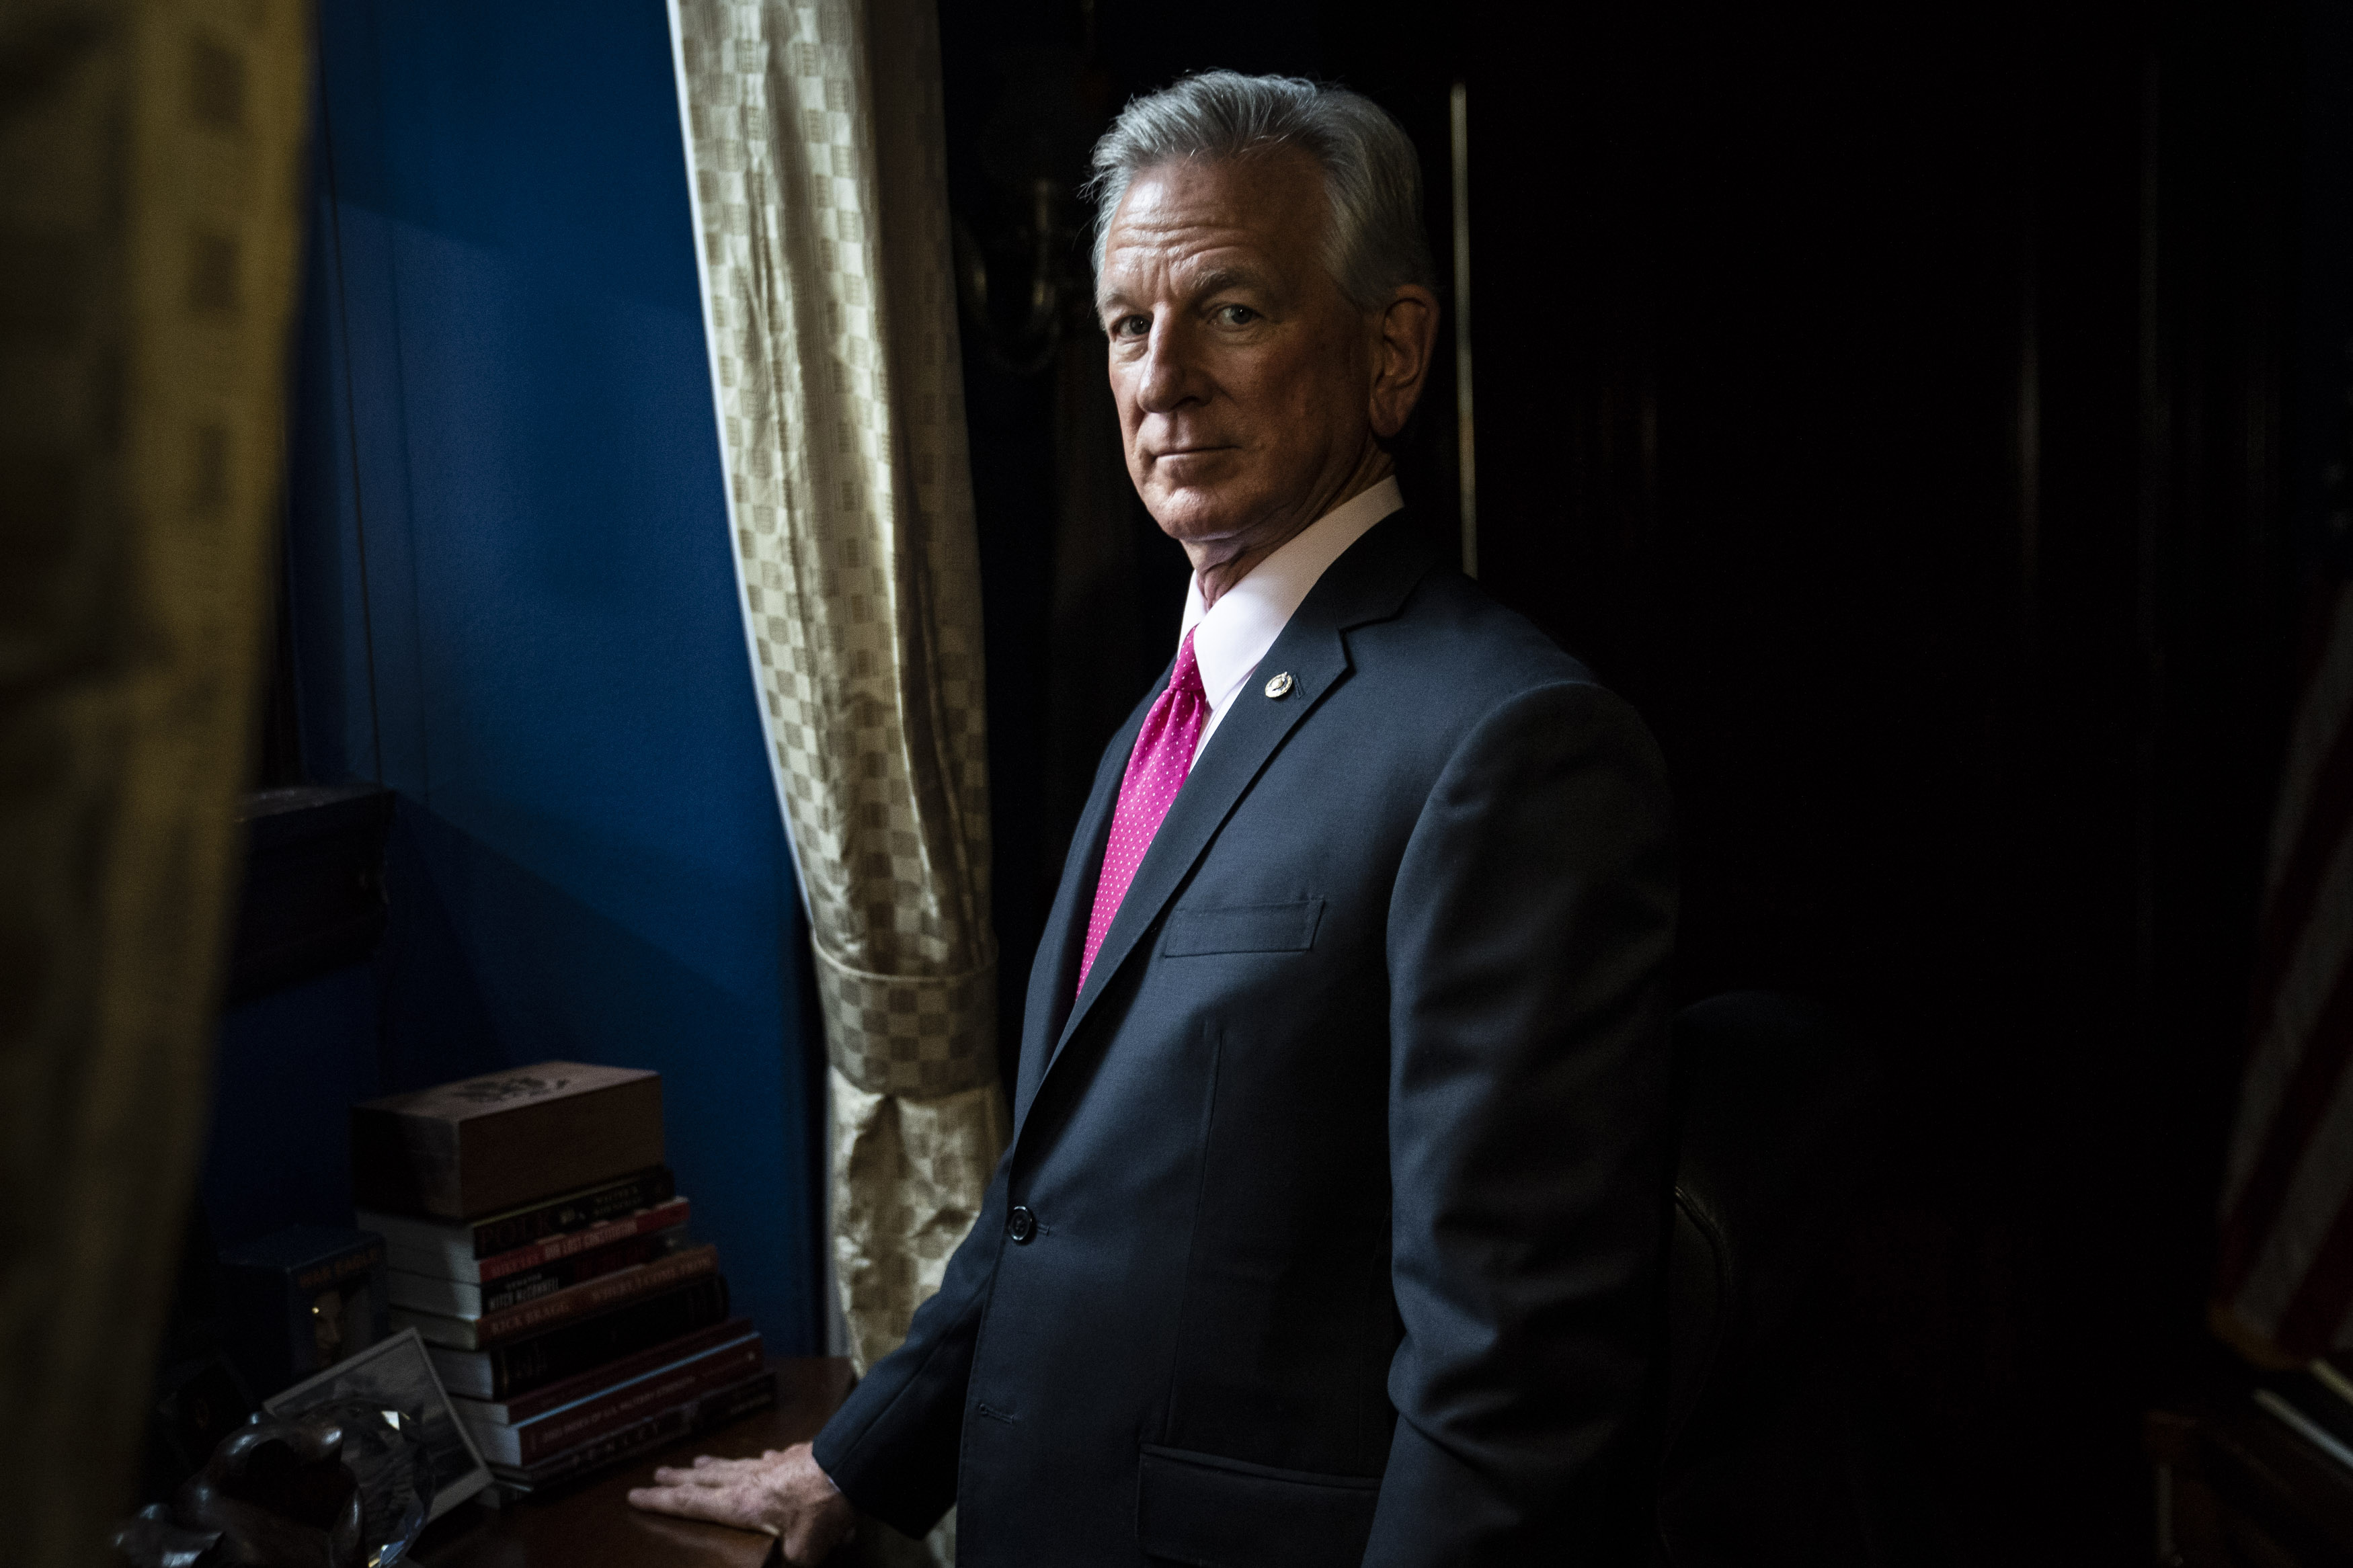 Sen. Tommy Tuberville, R-Ala., poses for a portrait in his office on Capitol Hill on Oct. 6. MUST CREDIT: Washington Post photo by Jabin Botsford